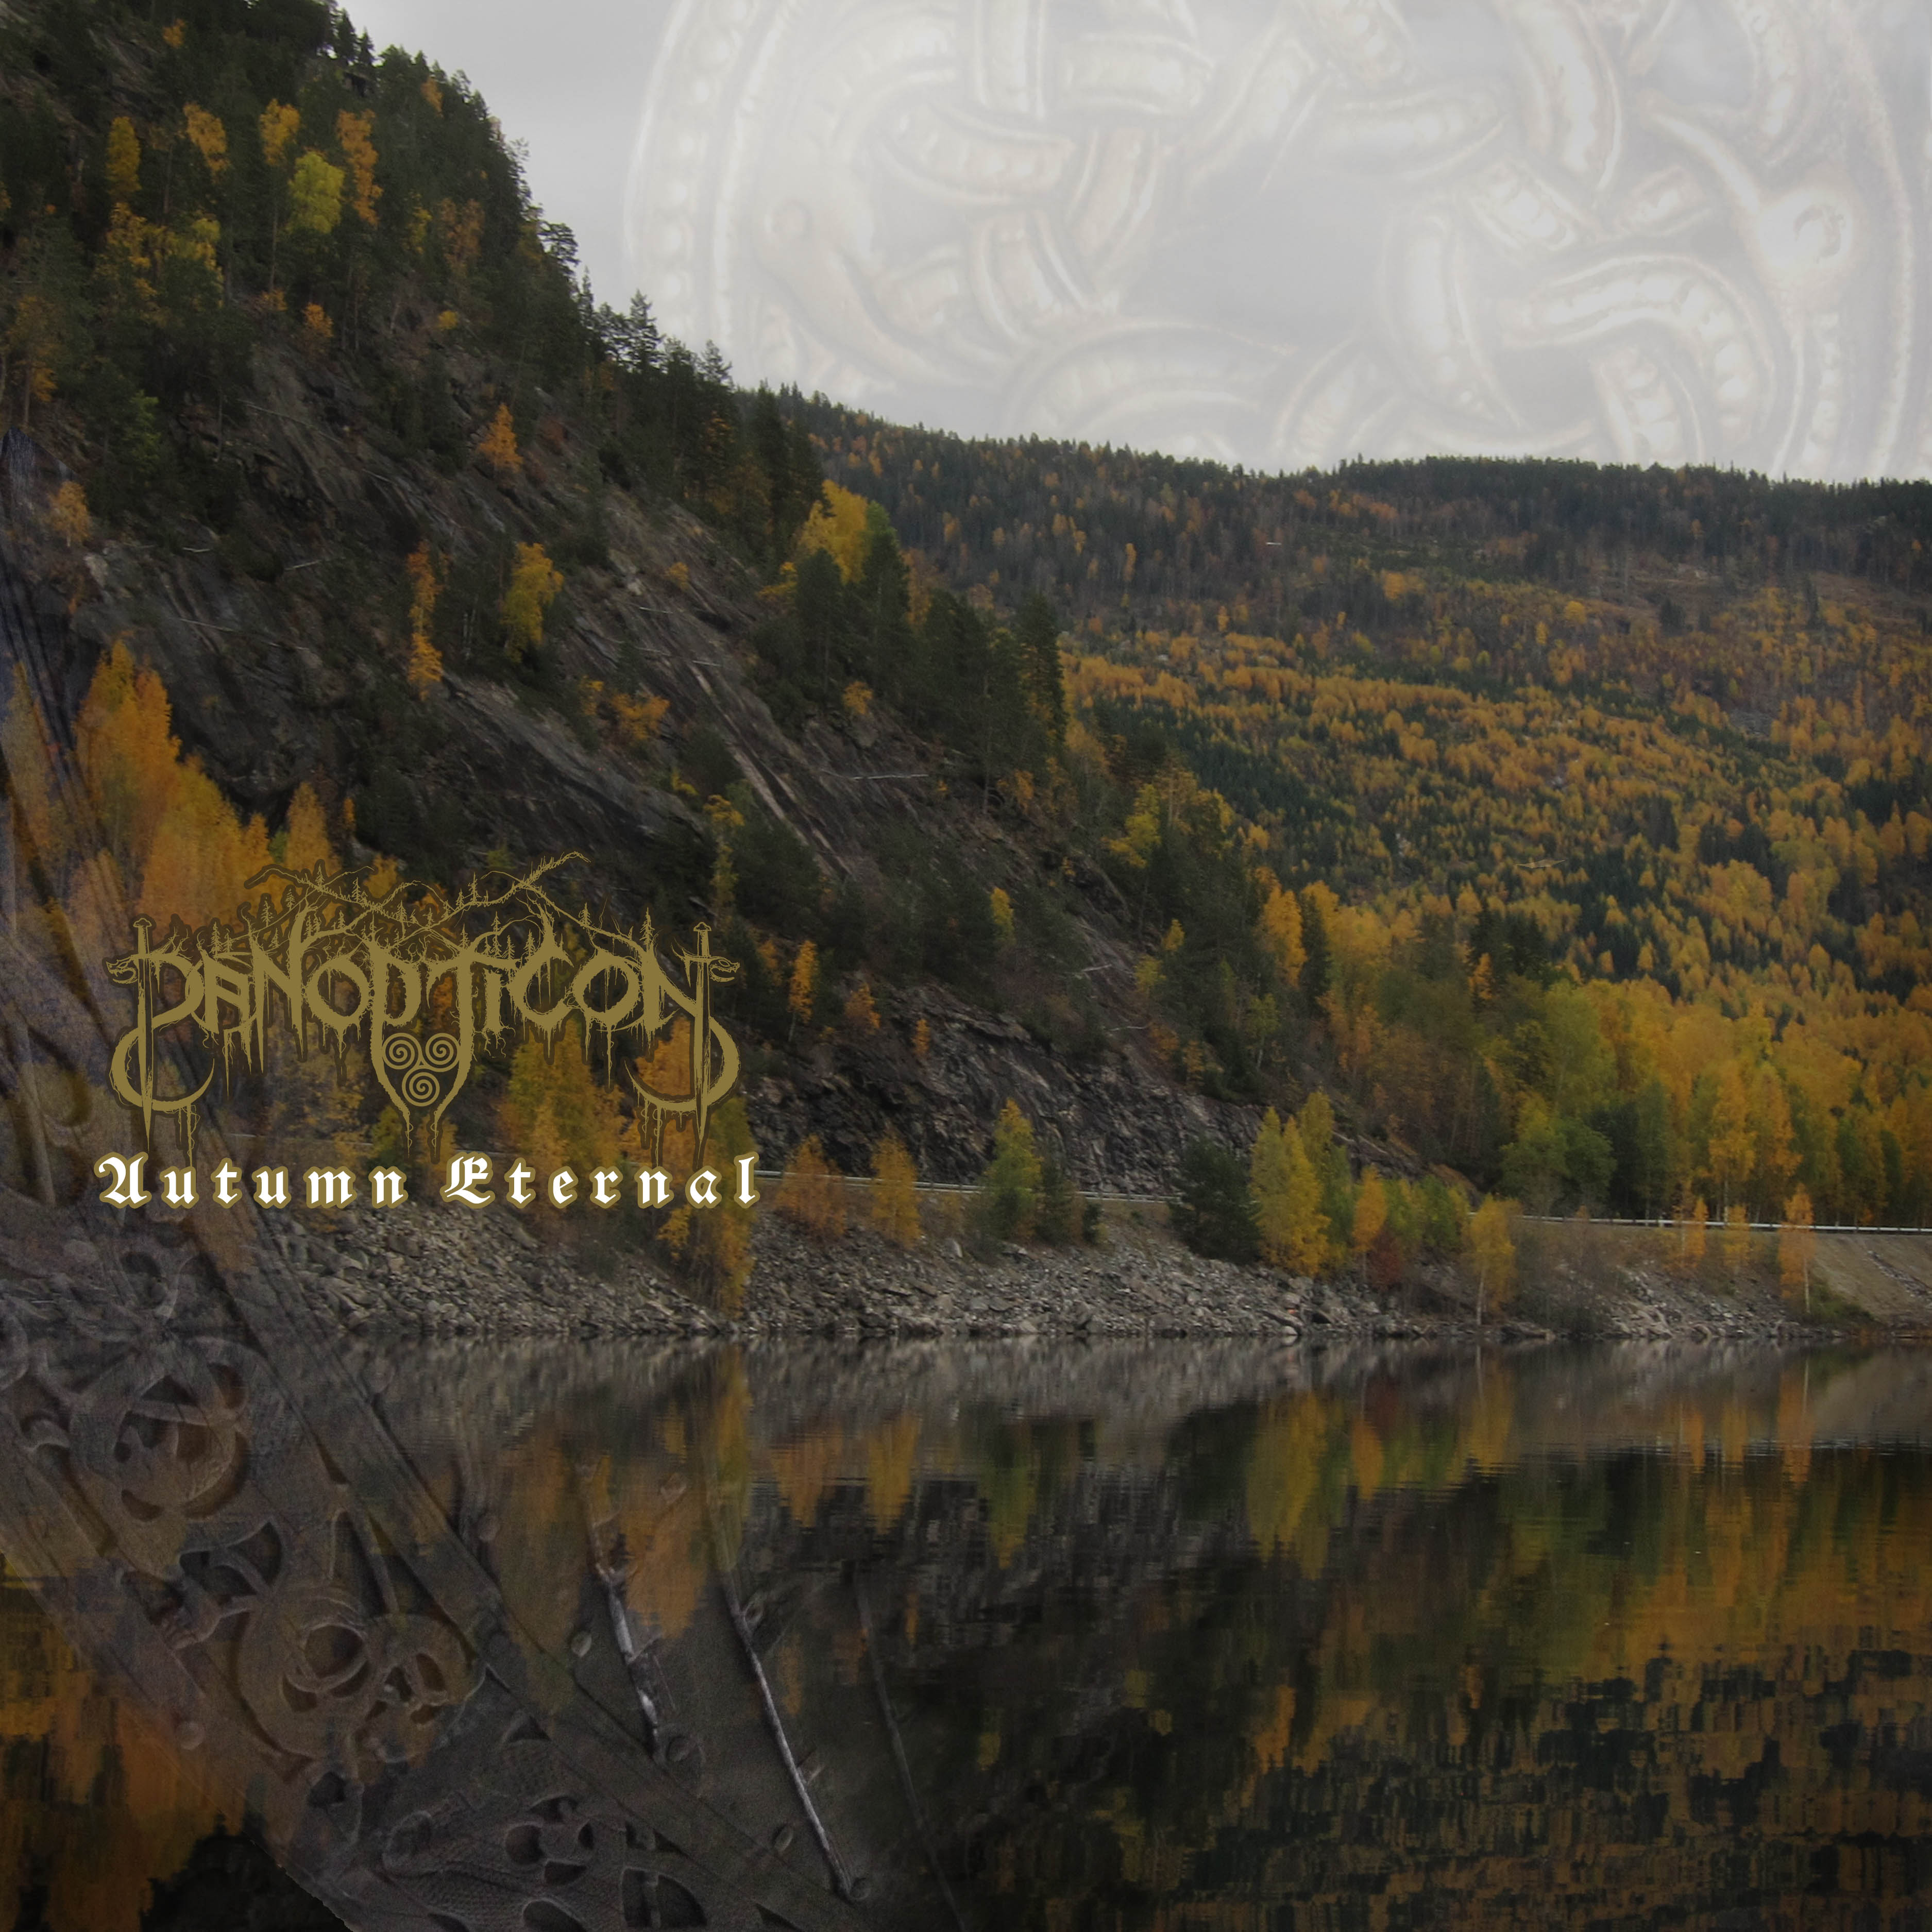 Autumn eternal album cover